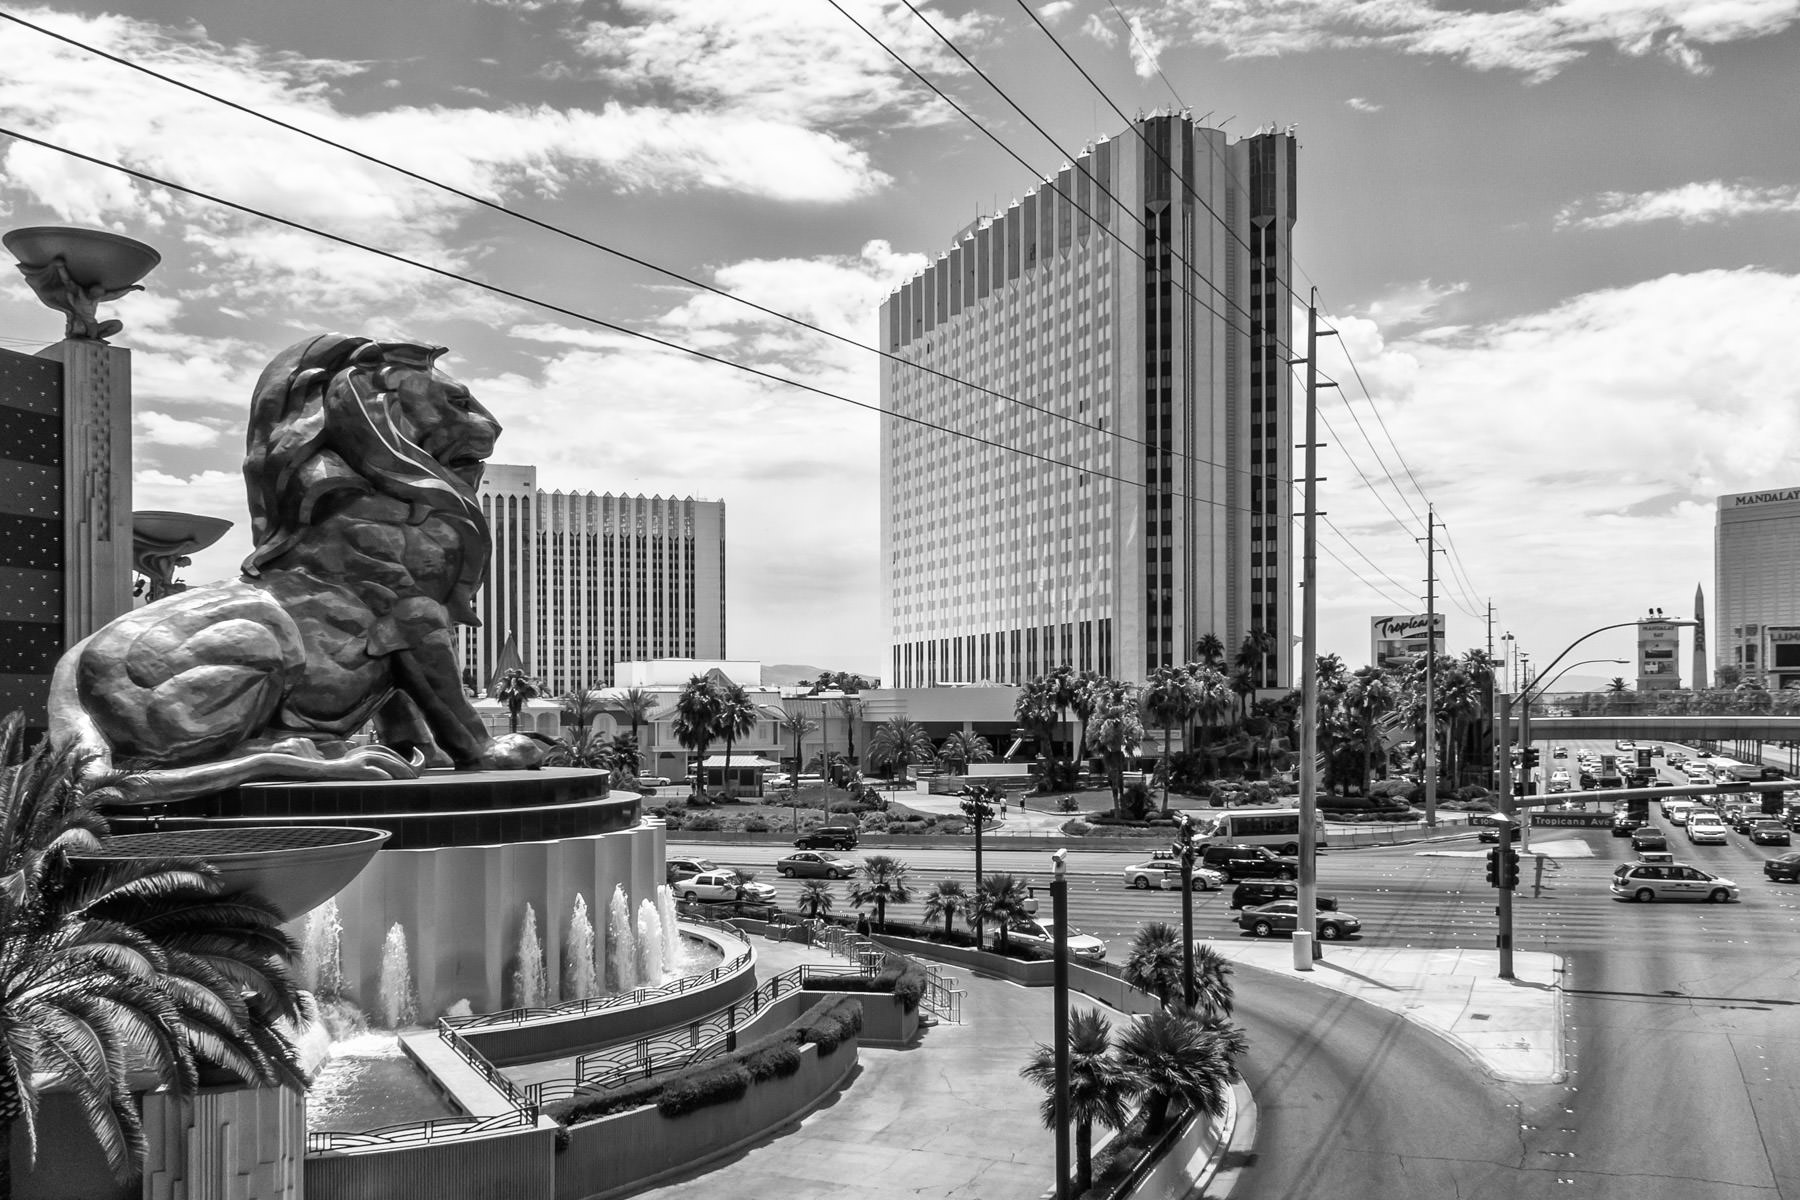 The MGM Grand's giant statue of a lion surveys the intersection of Tropicana and The Strip, Las Vegas.